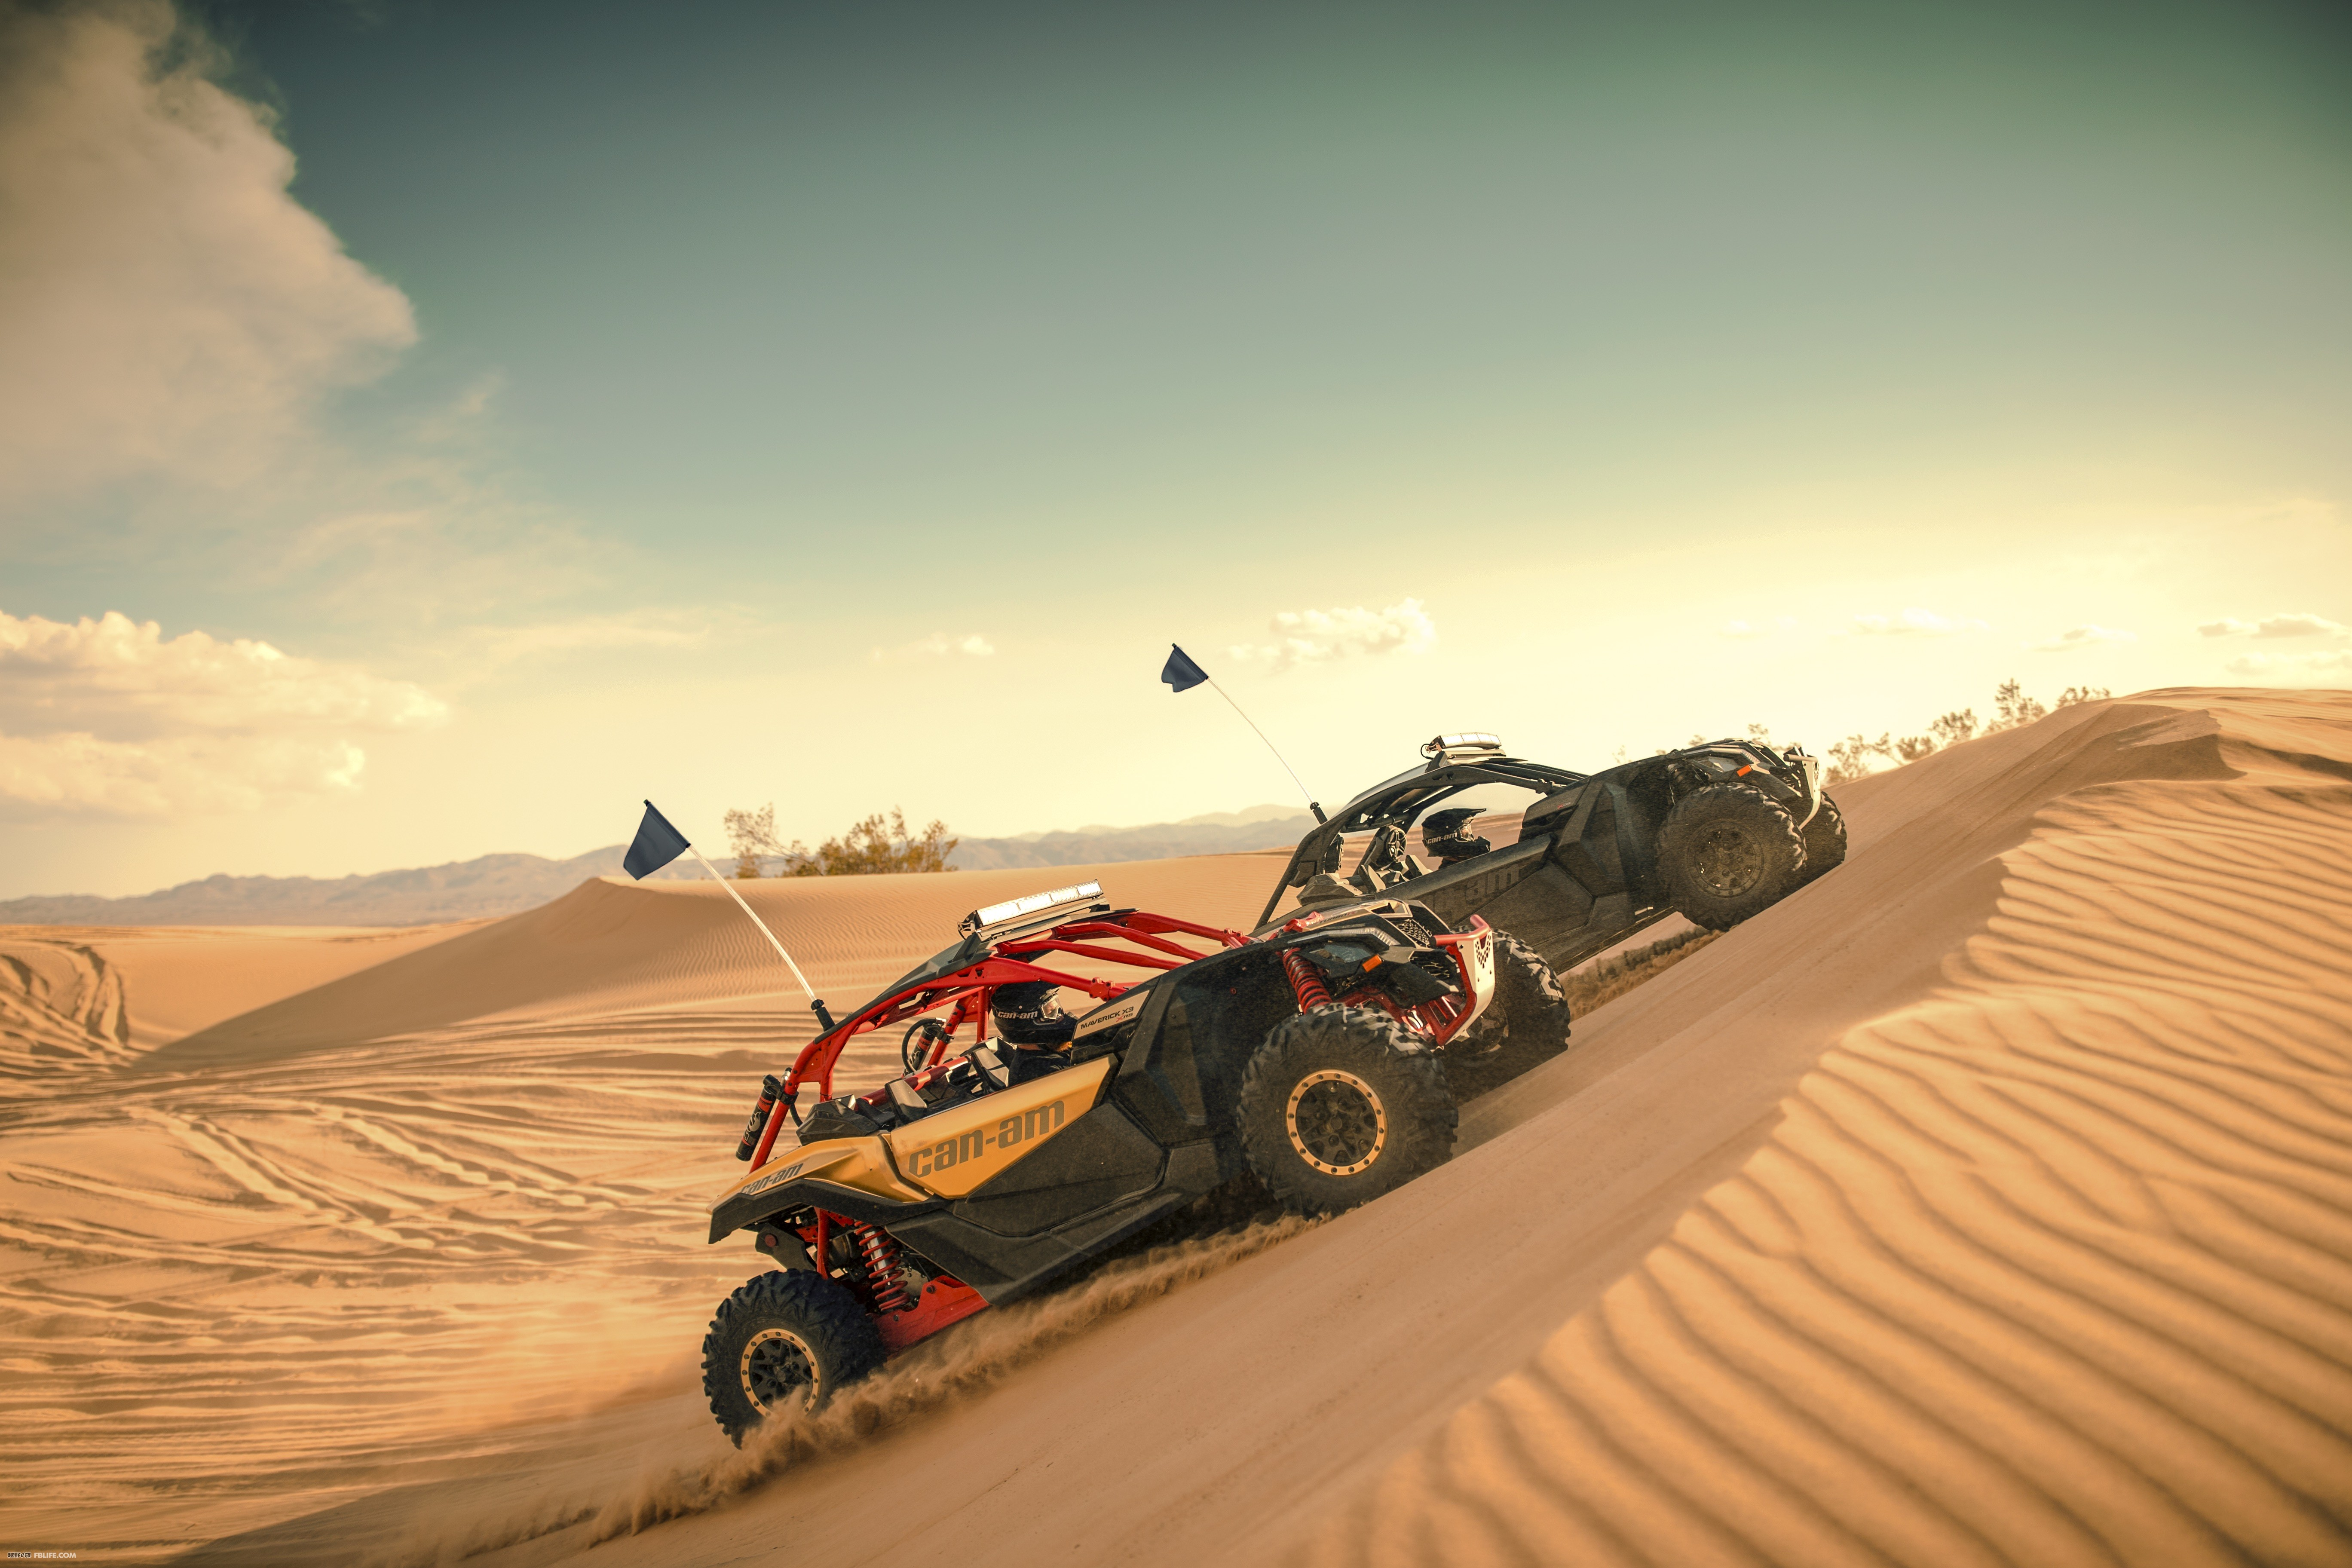 Maverick-X3-Xrs-TURBO-R-Gold-and-Can-Am-Red-Dunes-Group-Riding-2.jpg